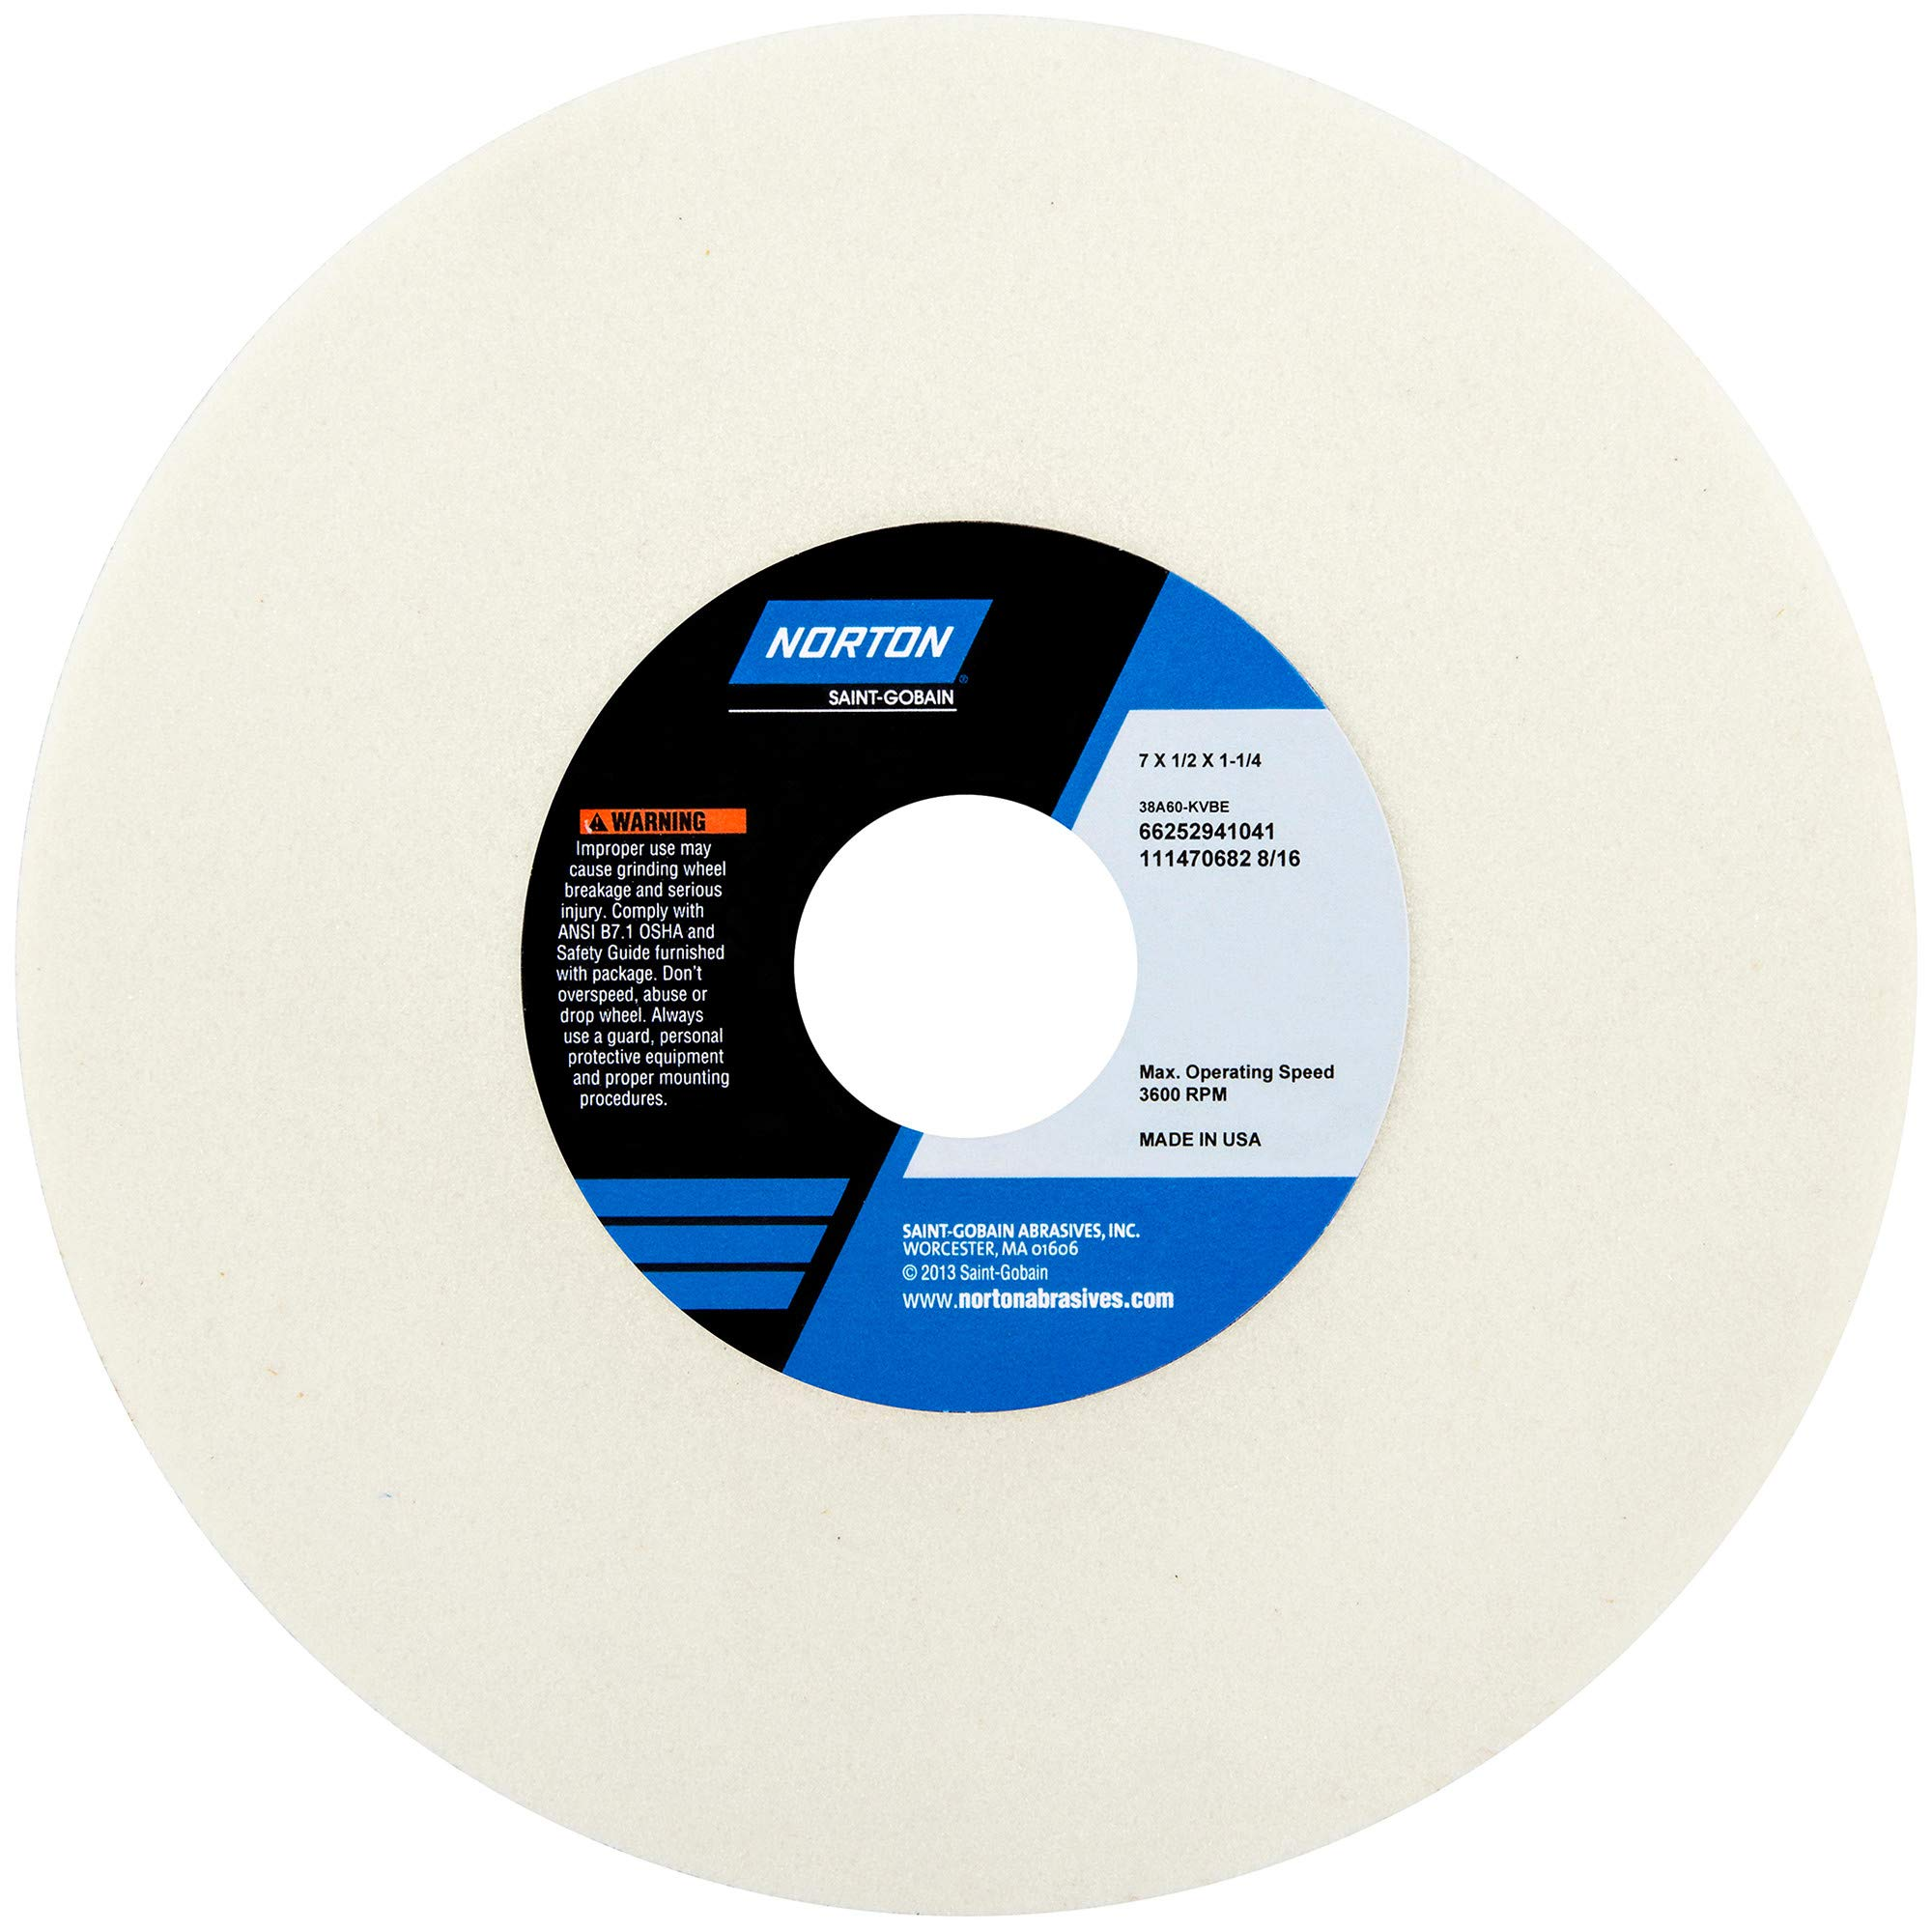 NORTON 38A Vitrified Grinding Wheel - Size: 7'' x 1/2'' x 1-1/4'' STYLE: Straight - Type 01 - No Recess Specification: 38A150-JVBE